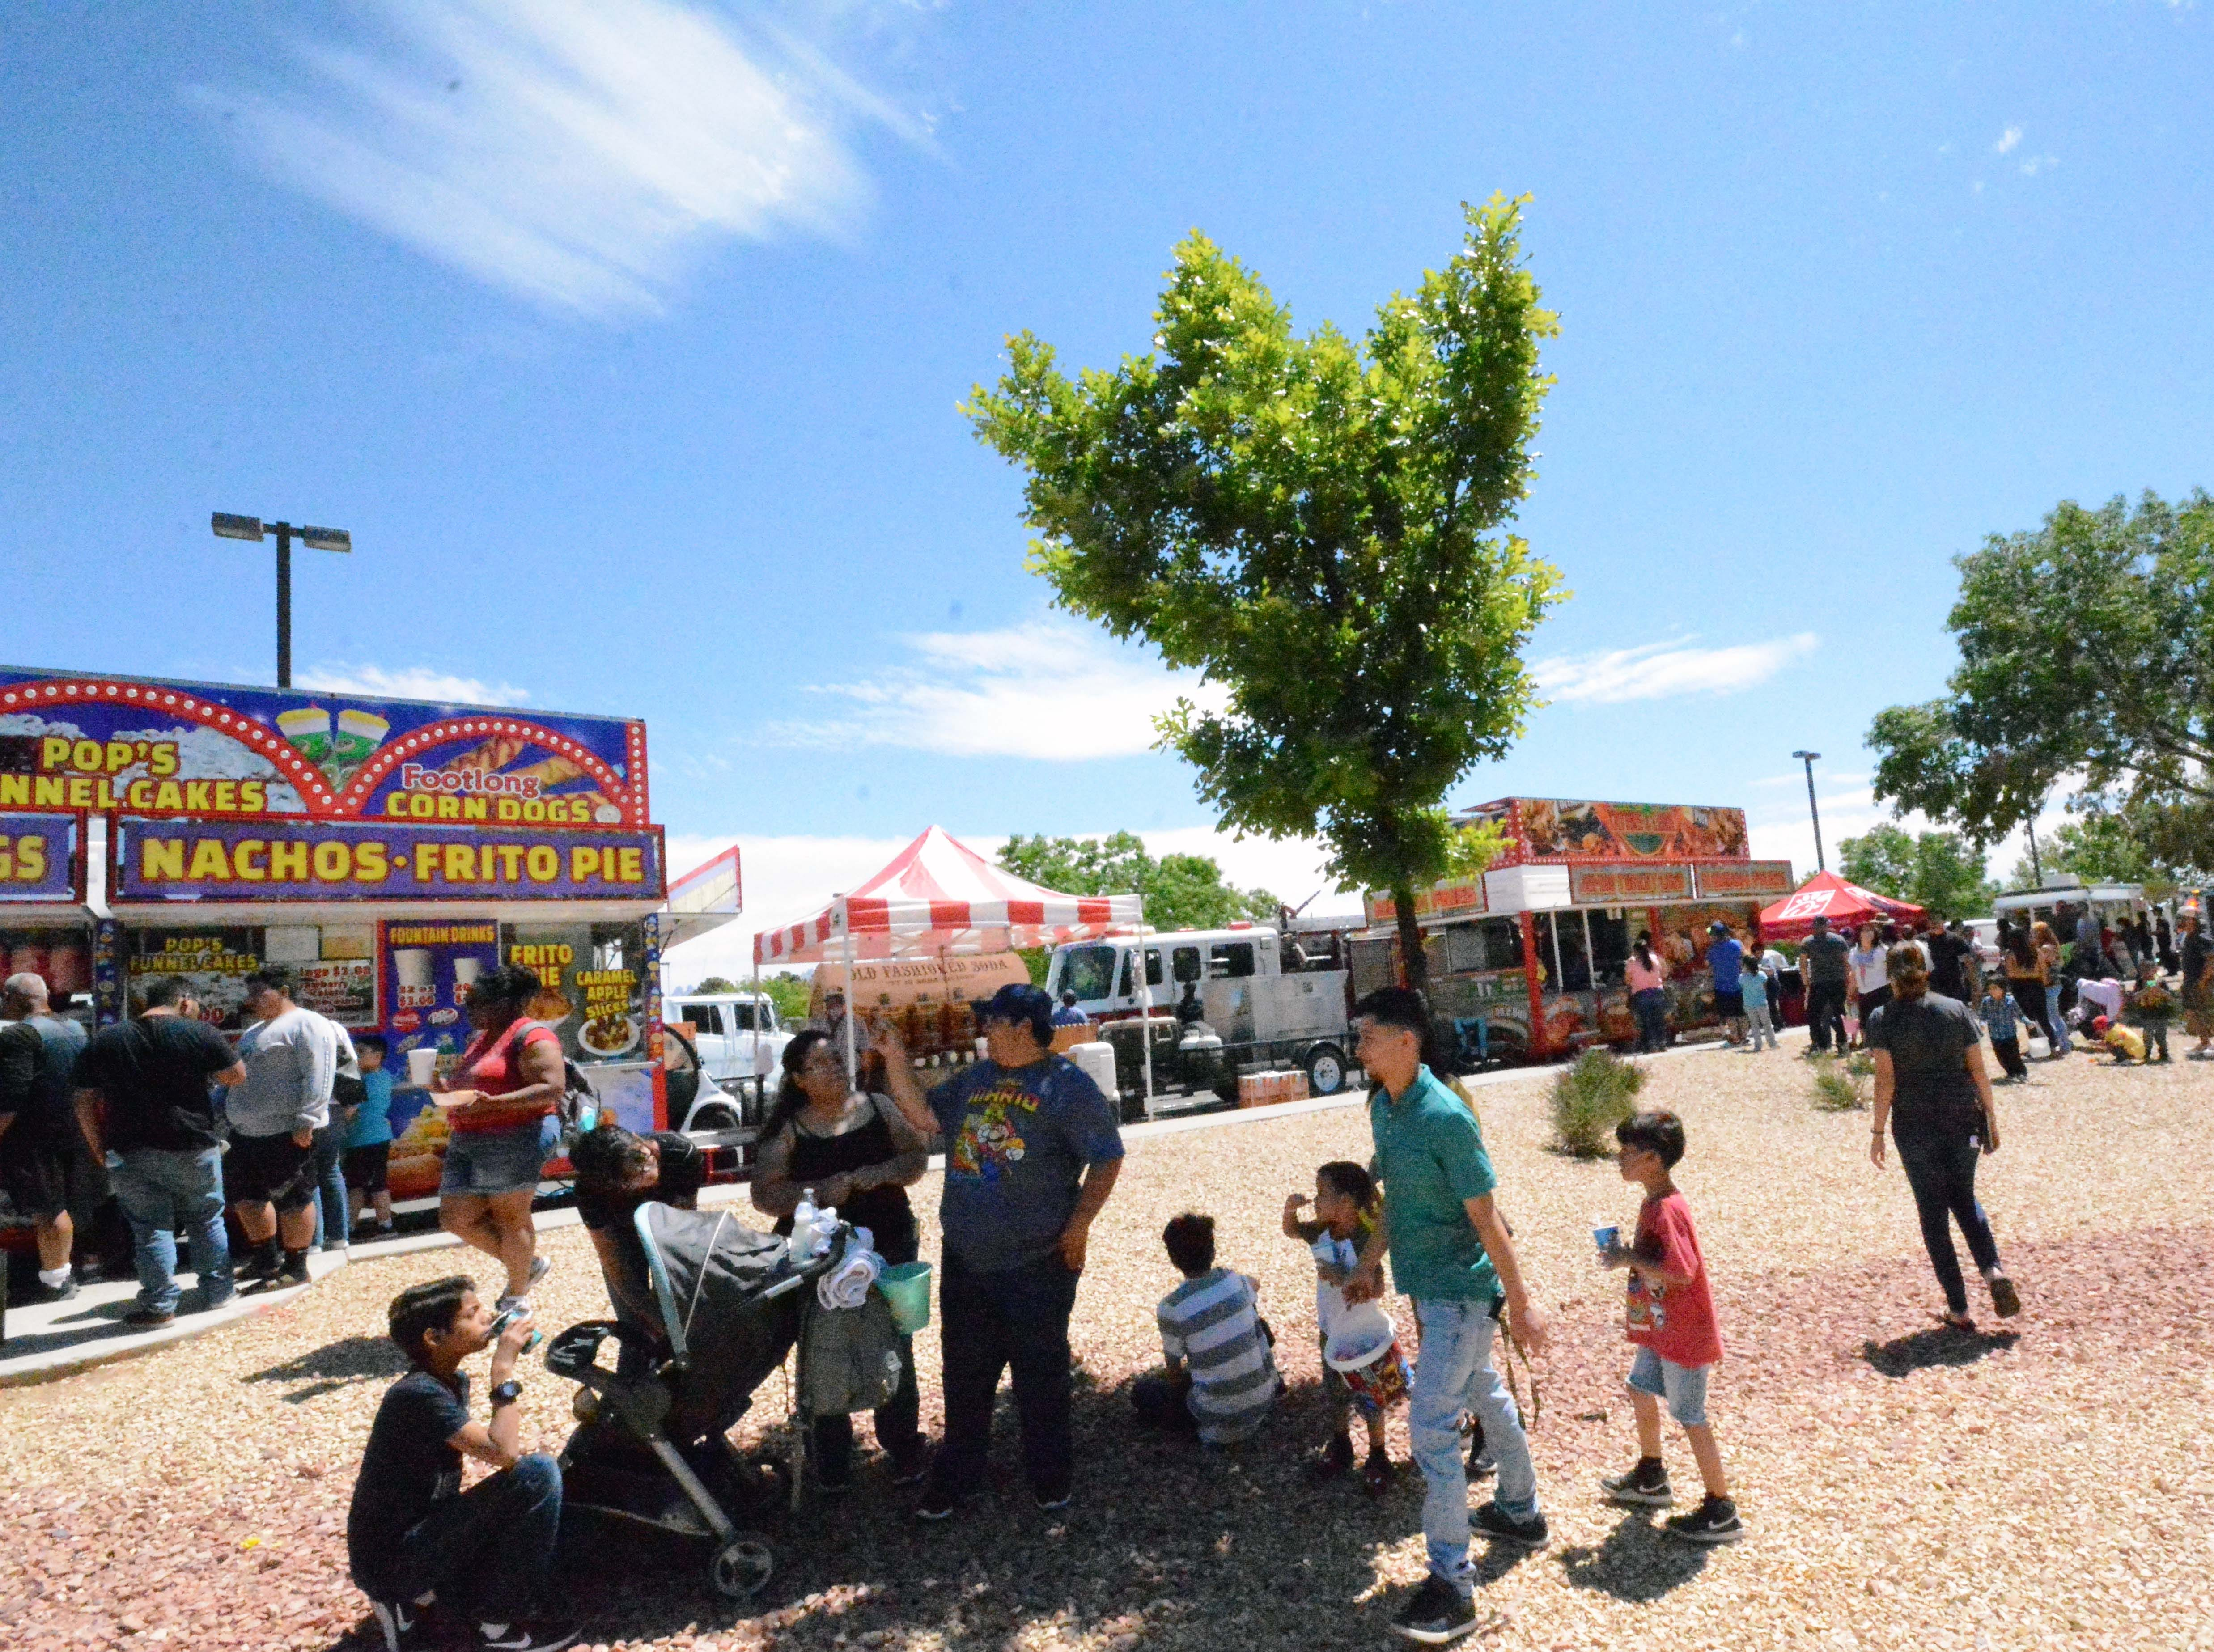 Food trucks offered plenty of meals and snacks during SpringFest at Young Park on Saturday, April 20, 2019.